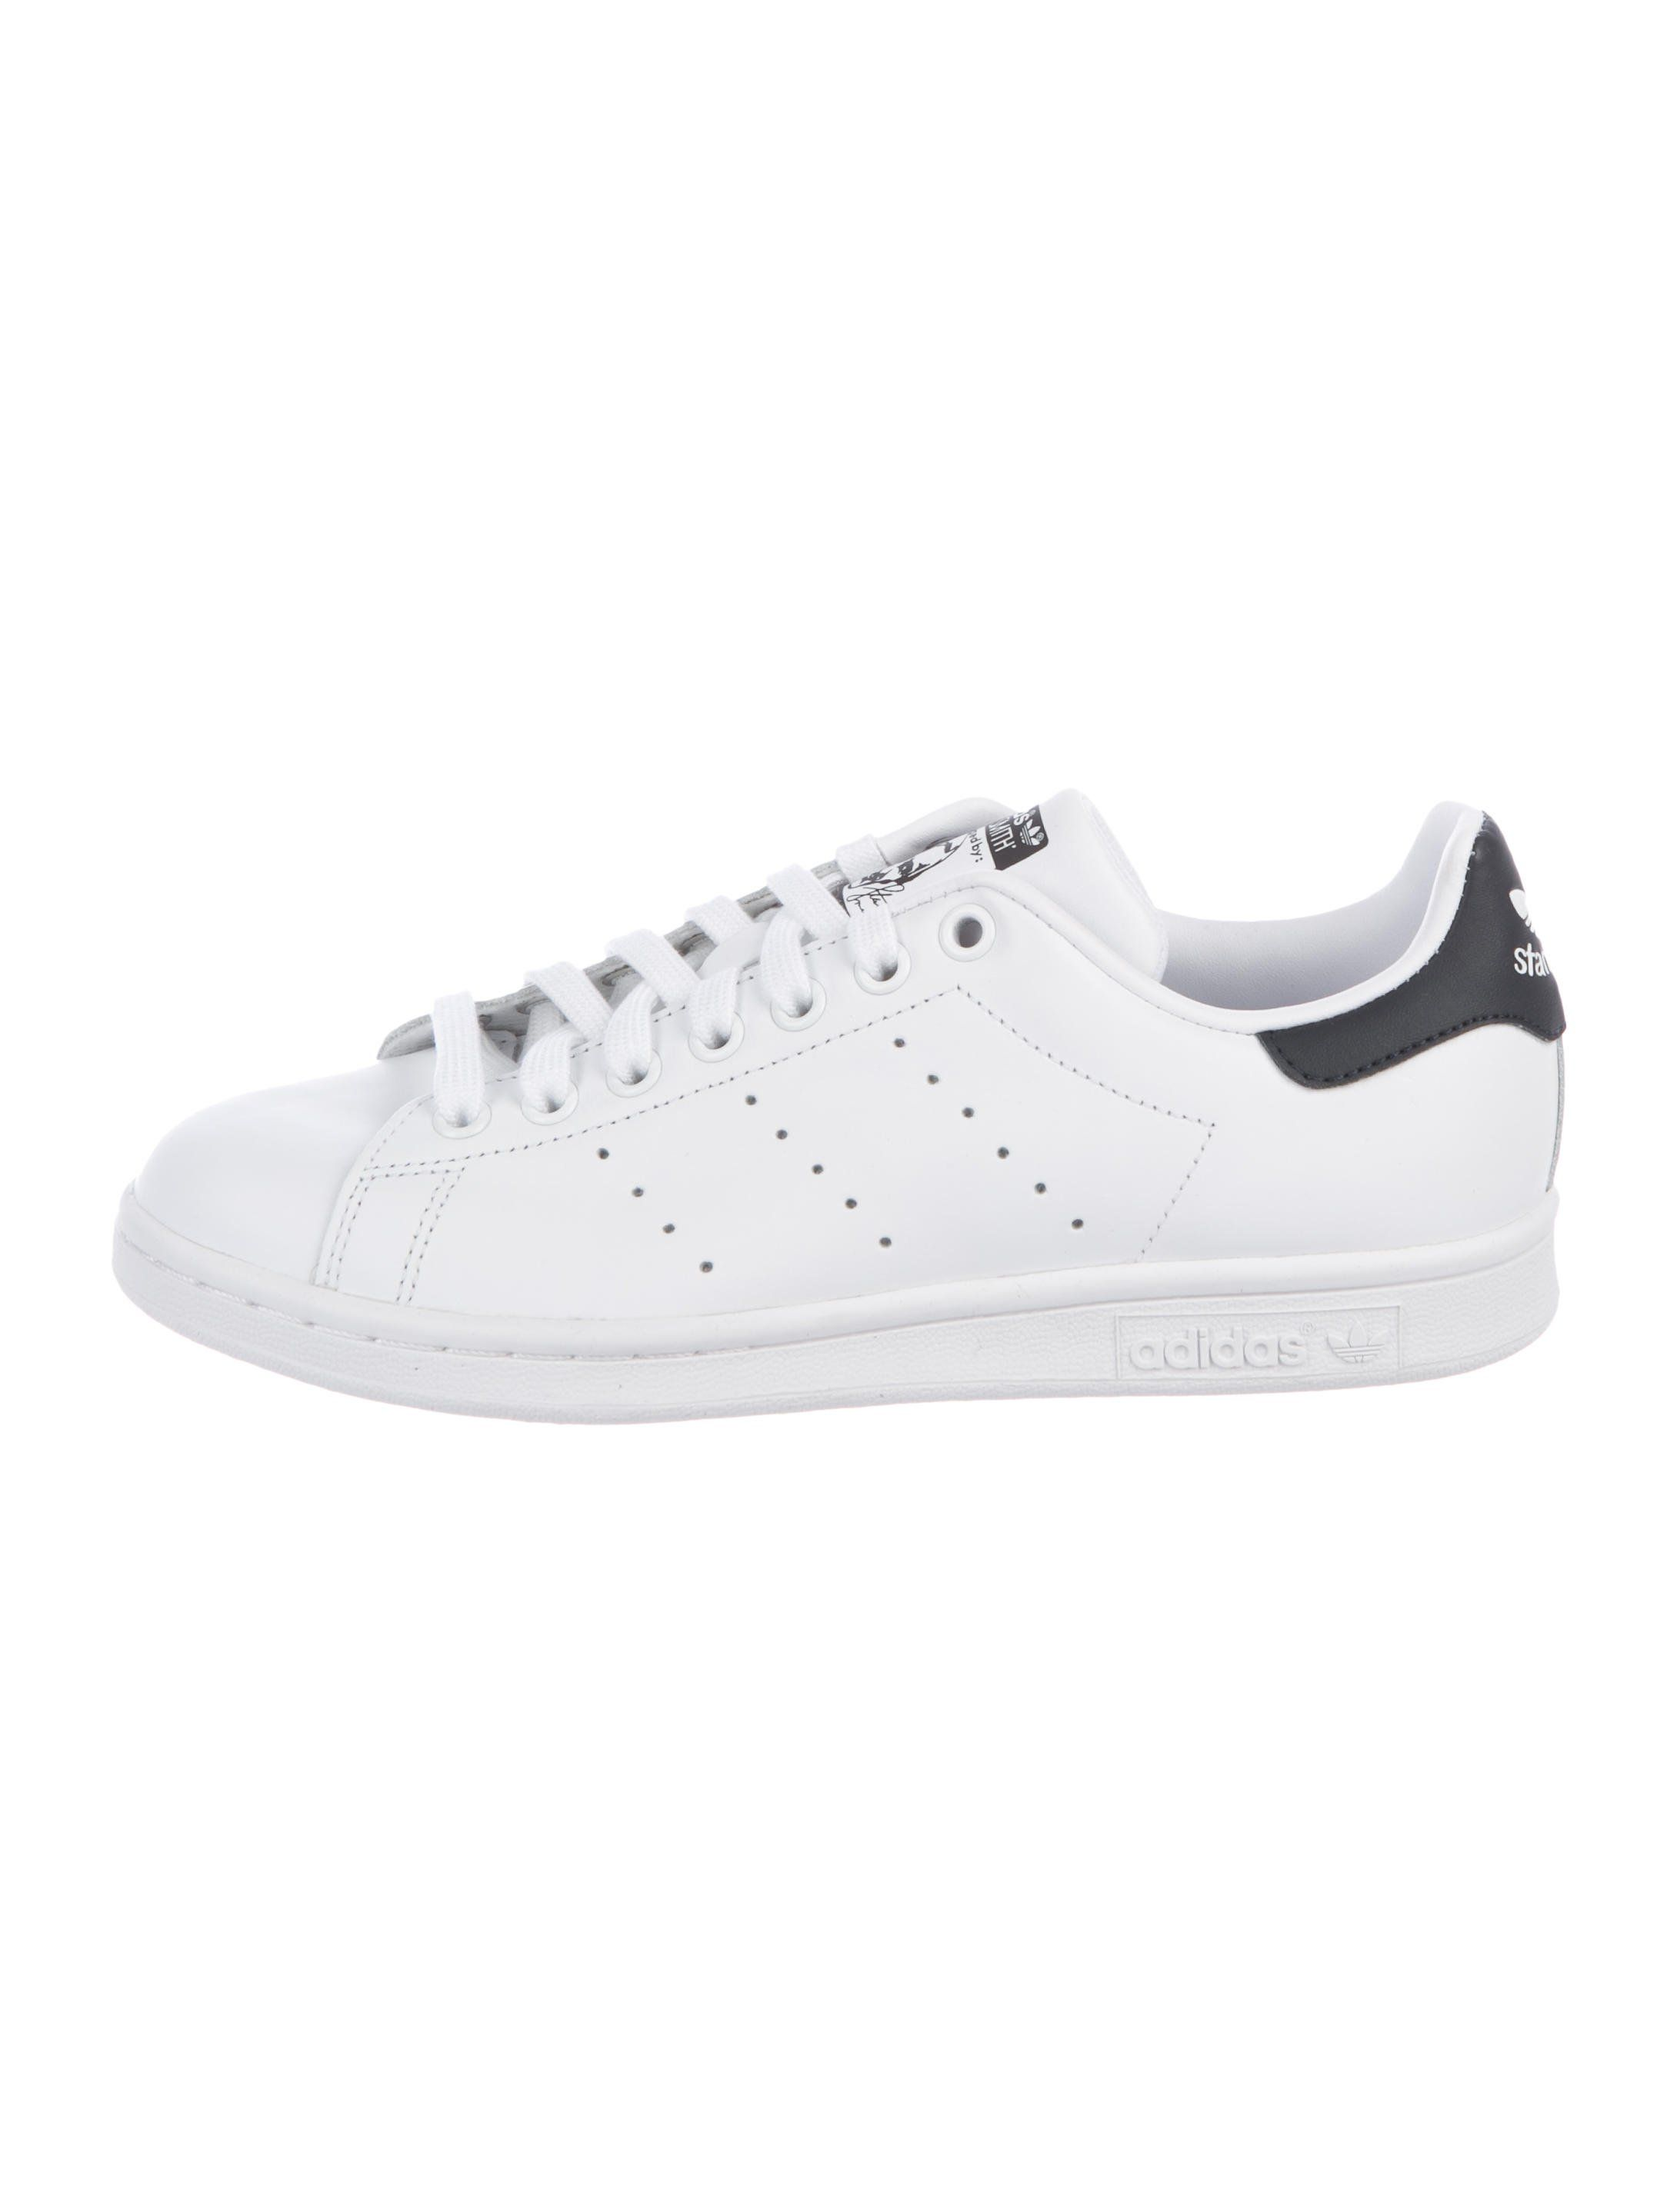 3cc2bdcb7092 Mens  white leather Adidas Stan Smith low-top sneakers with perforated  stripe embellishments at sides